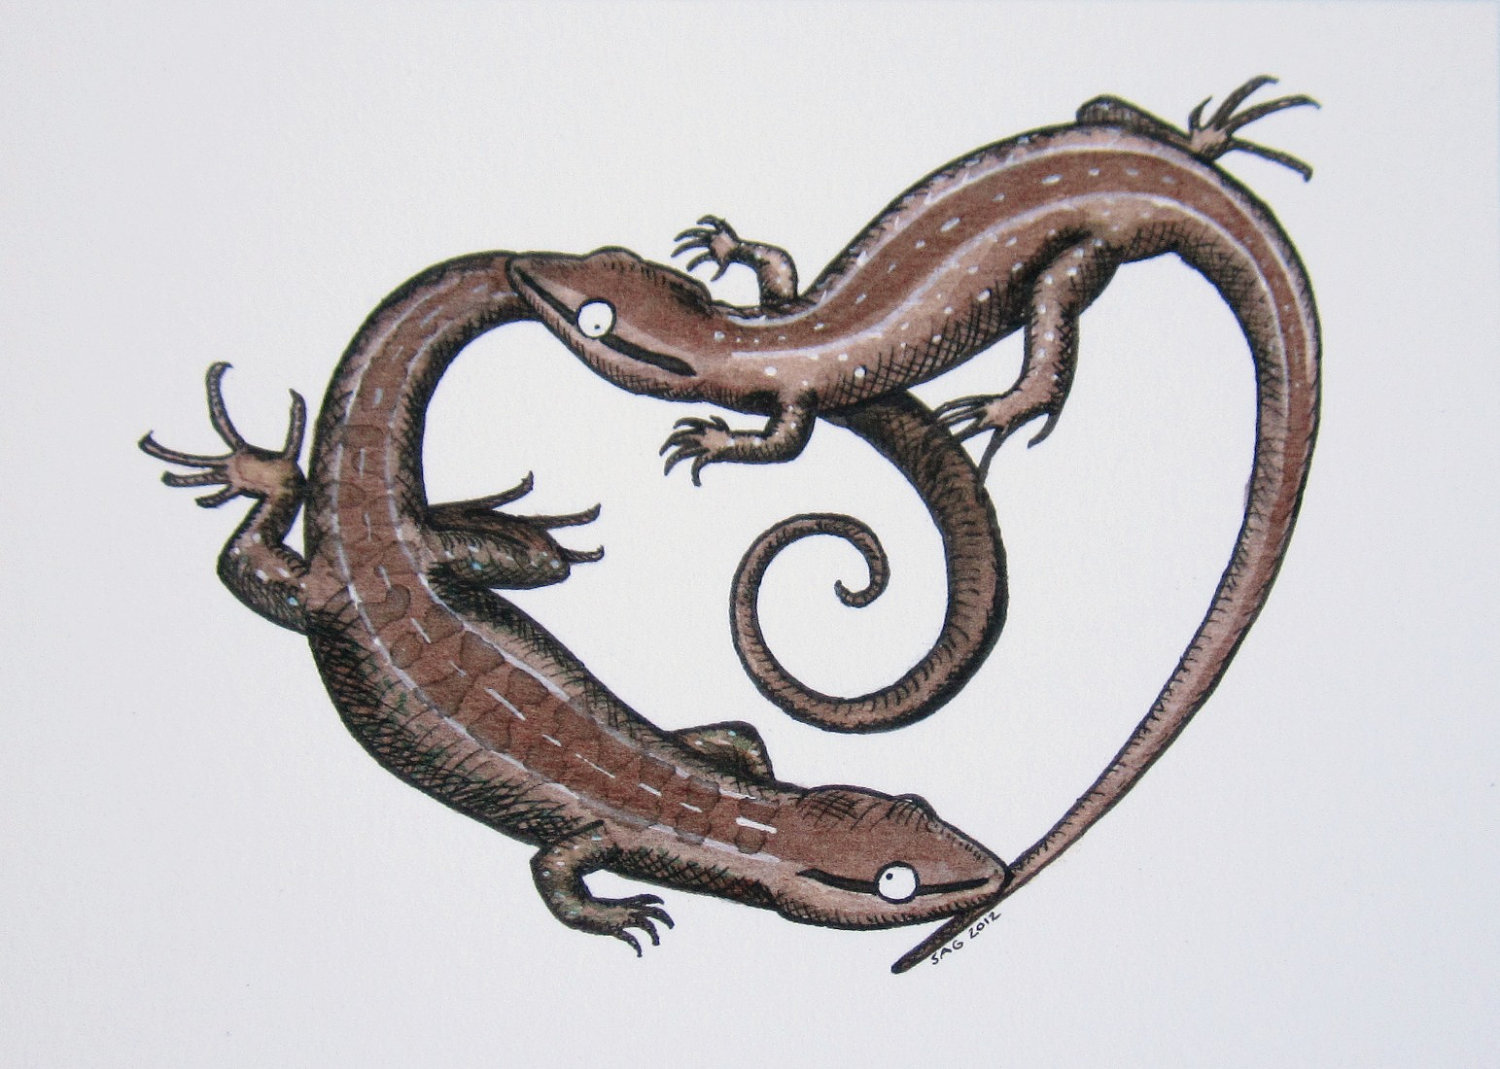 Drawn reptile salamander Drawing Ink Print of Courting